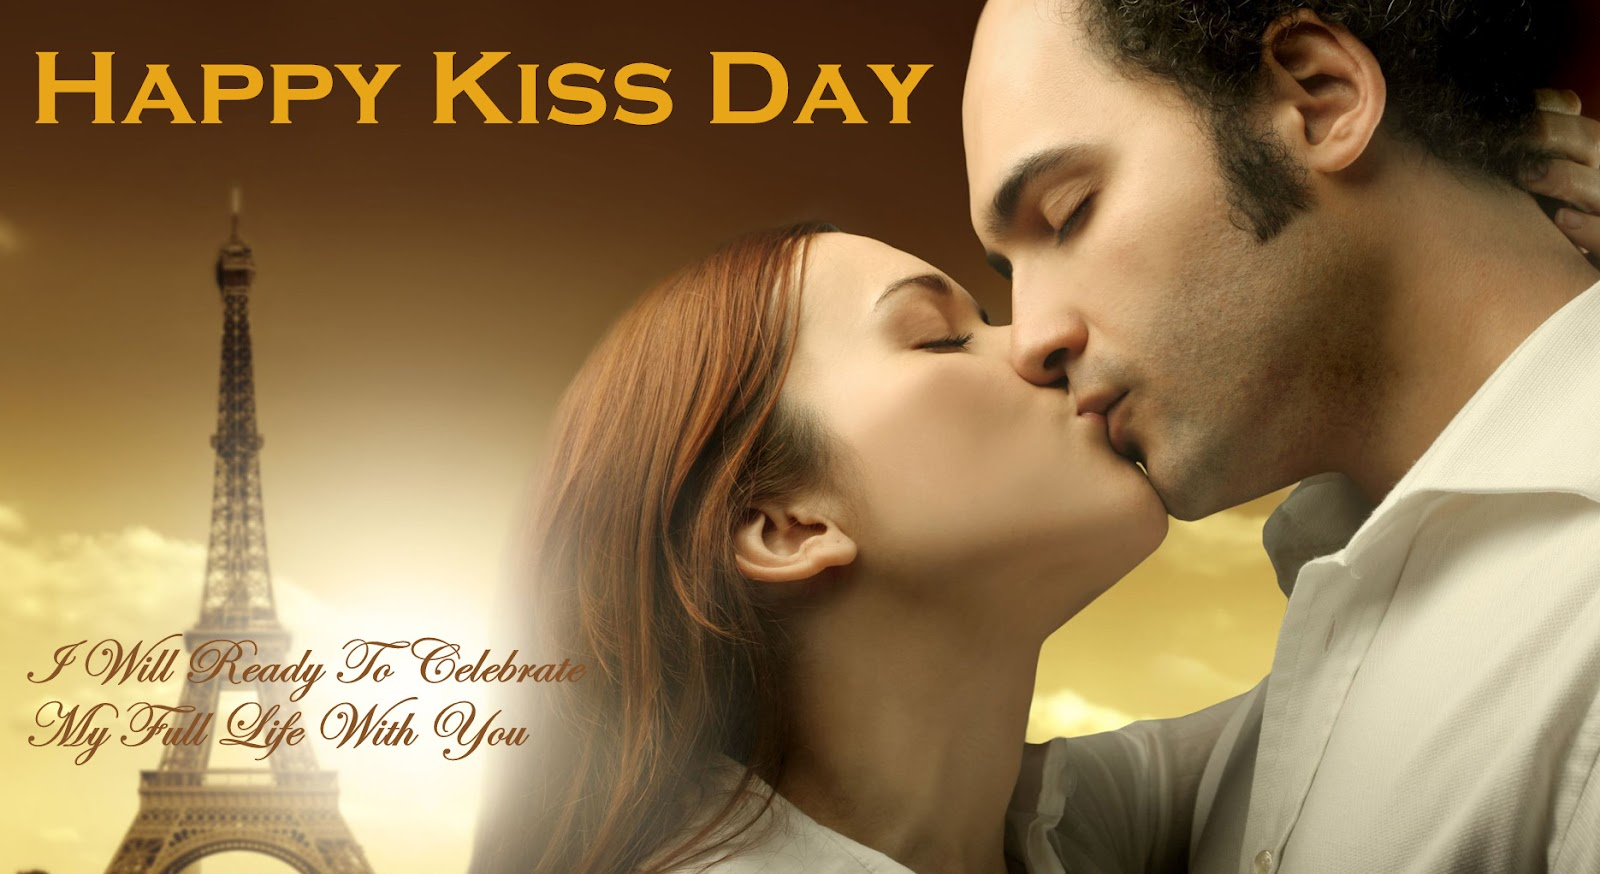 Happy-Kiss-Day-Images-1